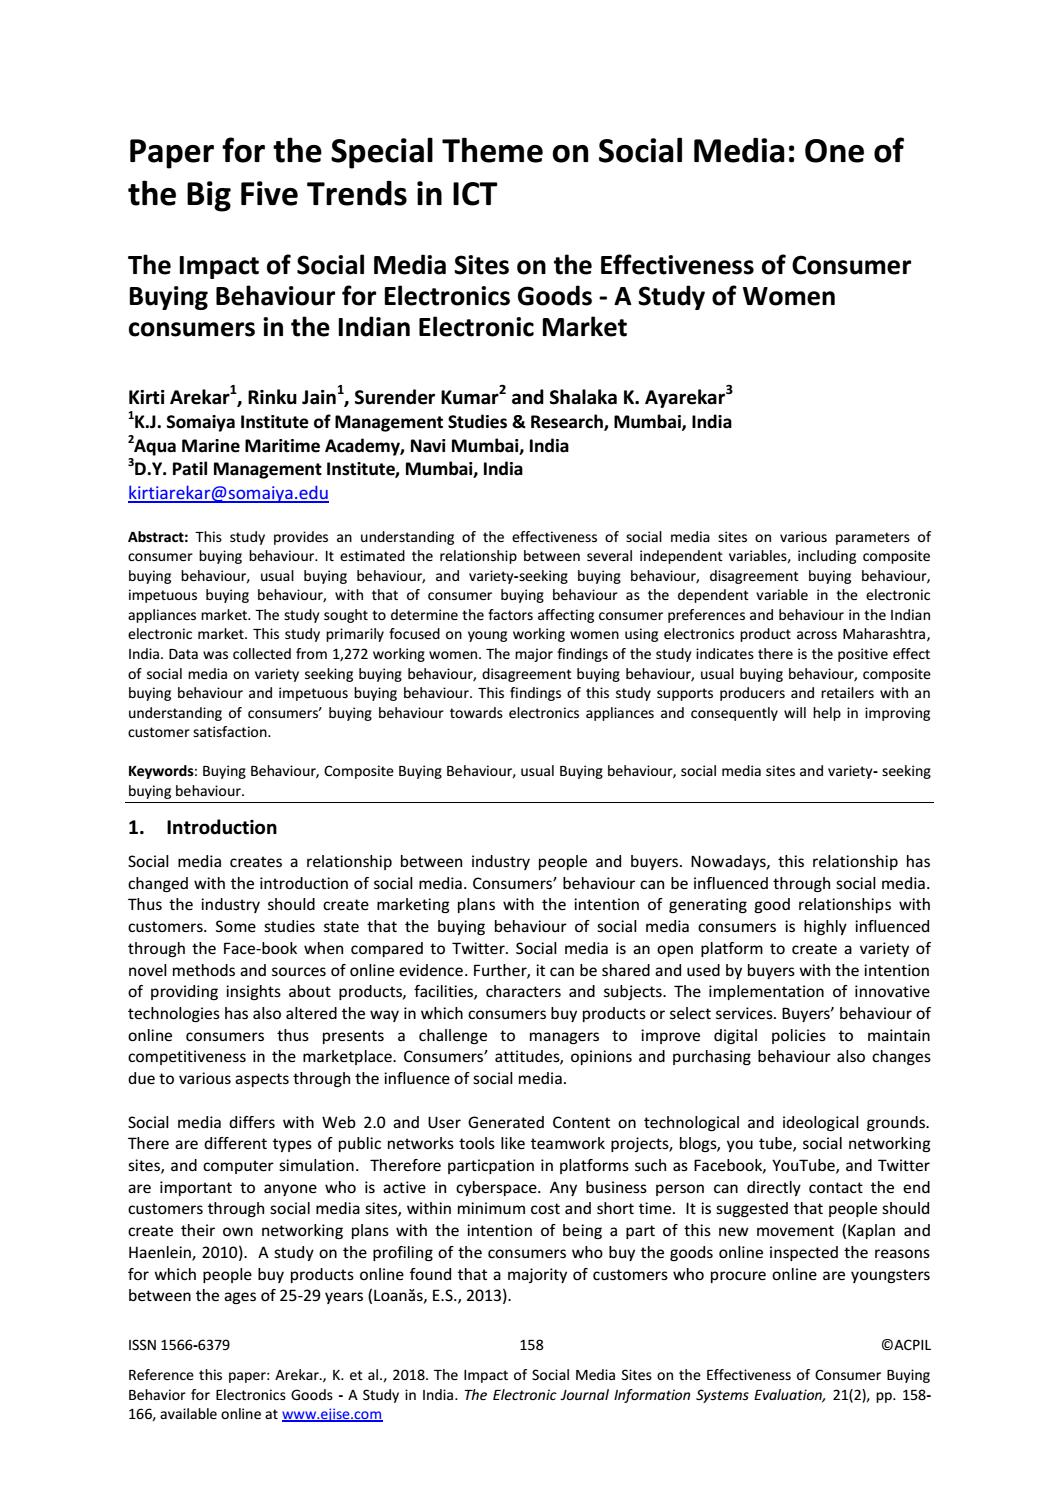 Research paper on customer buying behaviour